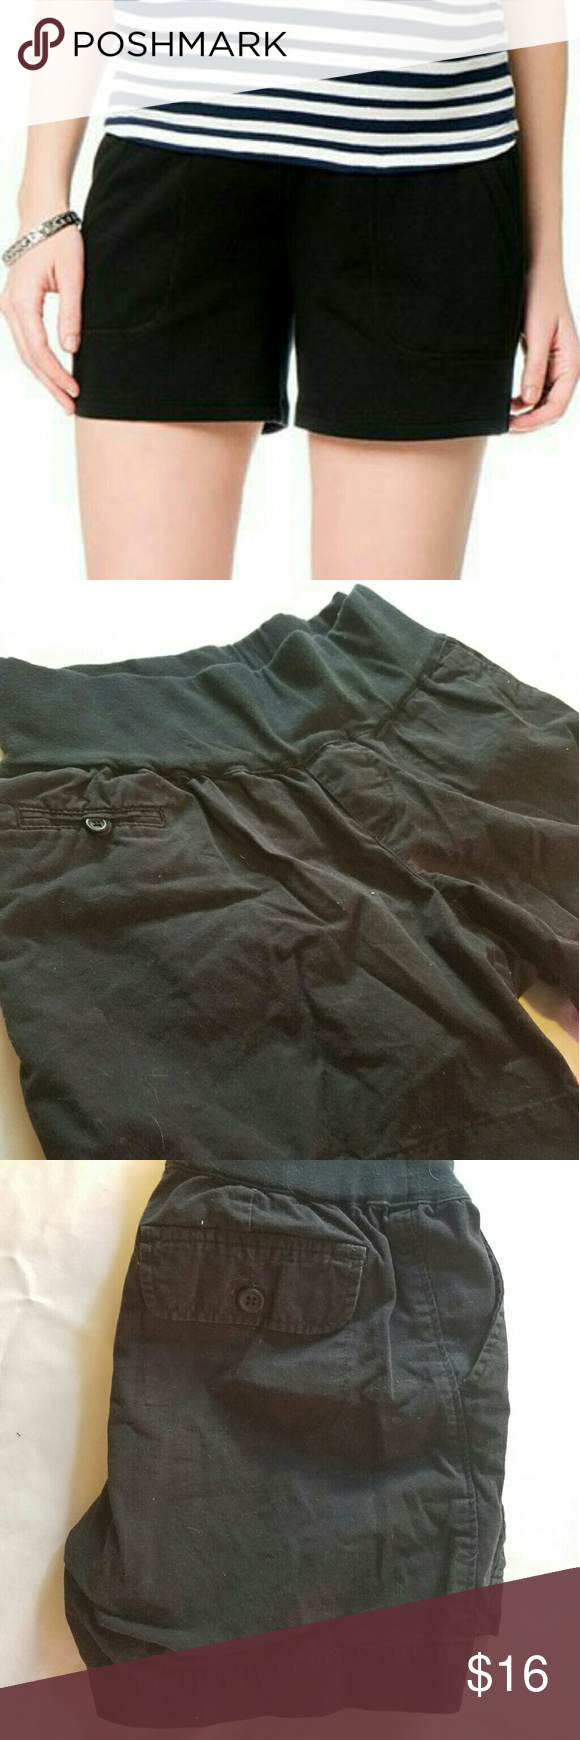 Liz Lange Maternity Shorts Black - Under the belly Extremely comfortable, all black maternity shorts from Liz Lange.  Size XS, stretchy and fit me just fine. I'm a small/medium. Liz Lange Shorts